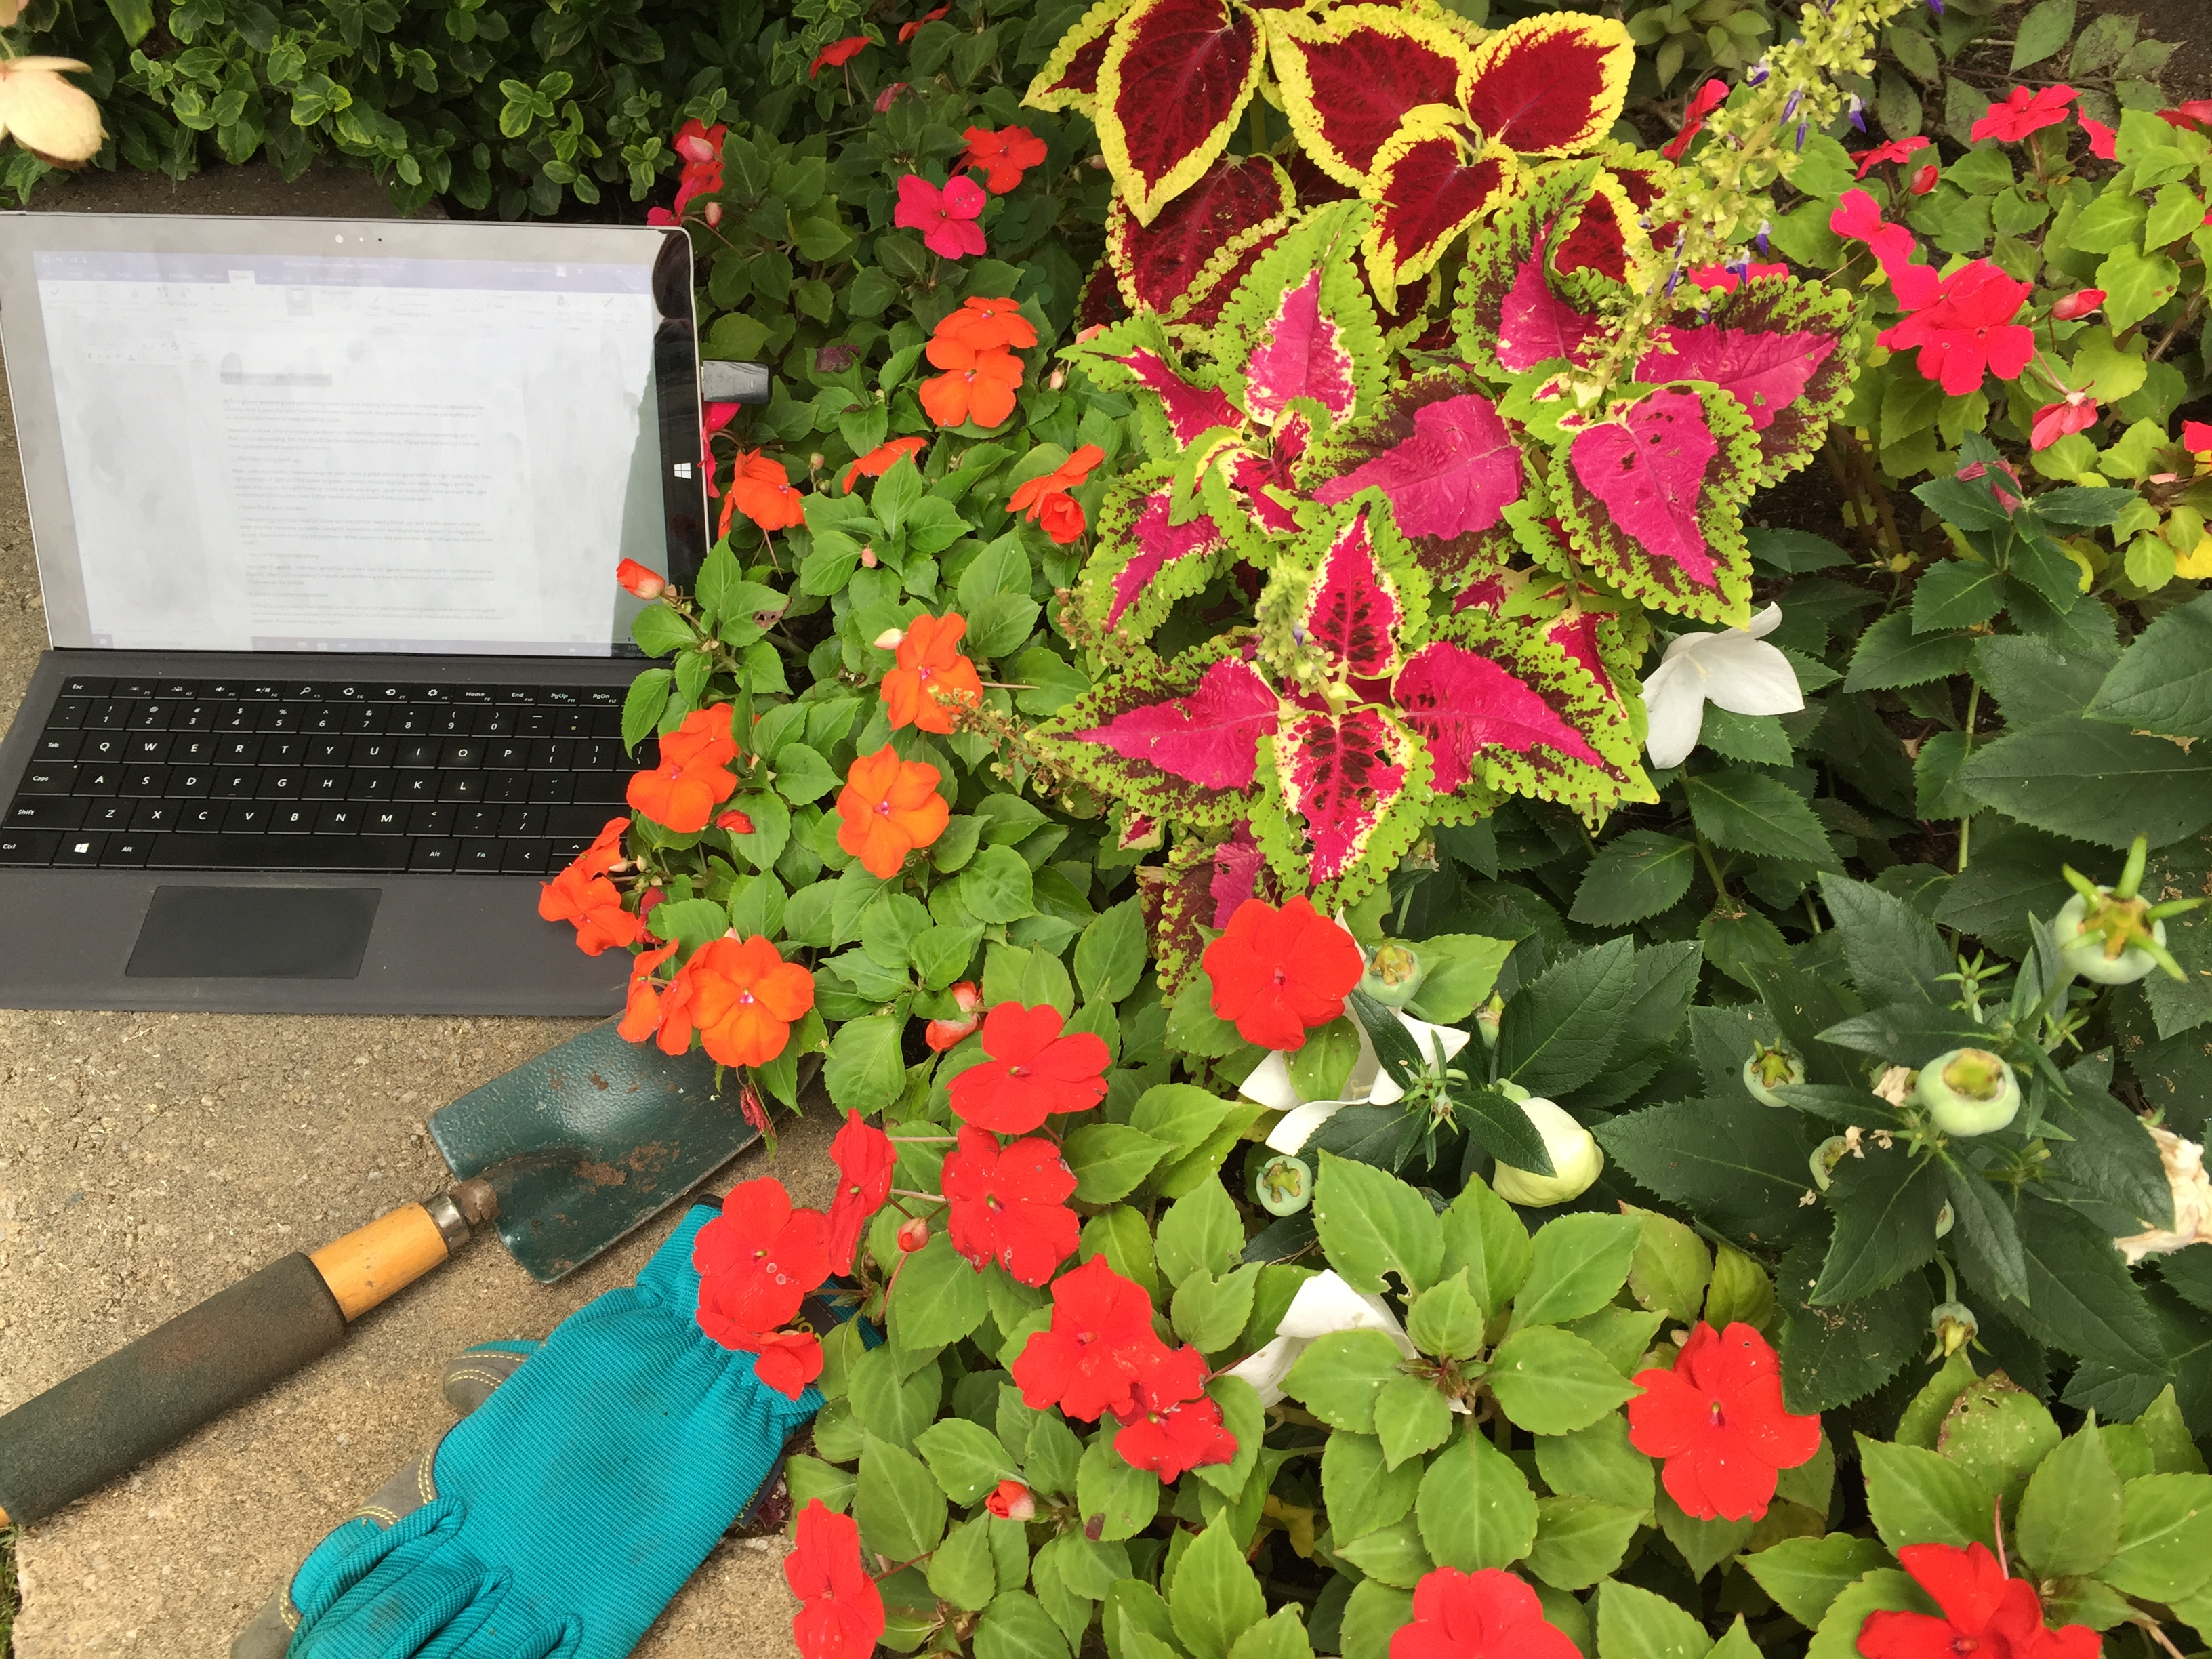 laptop and garden tools next to flowering plants